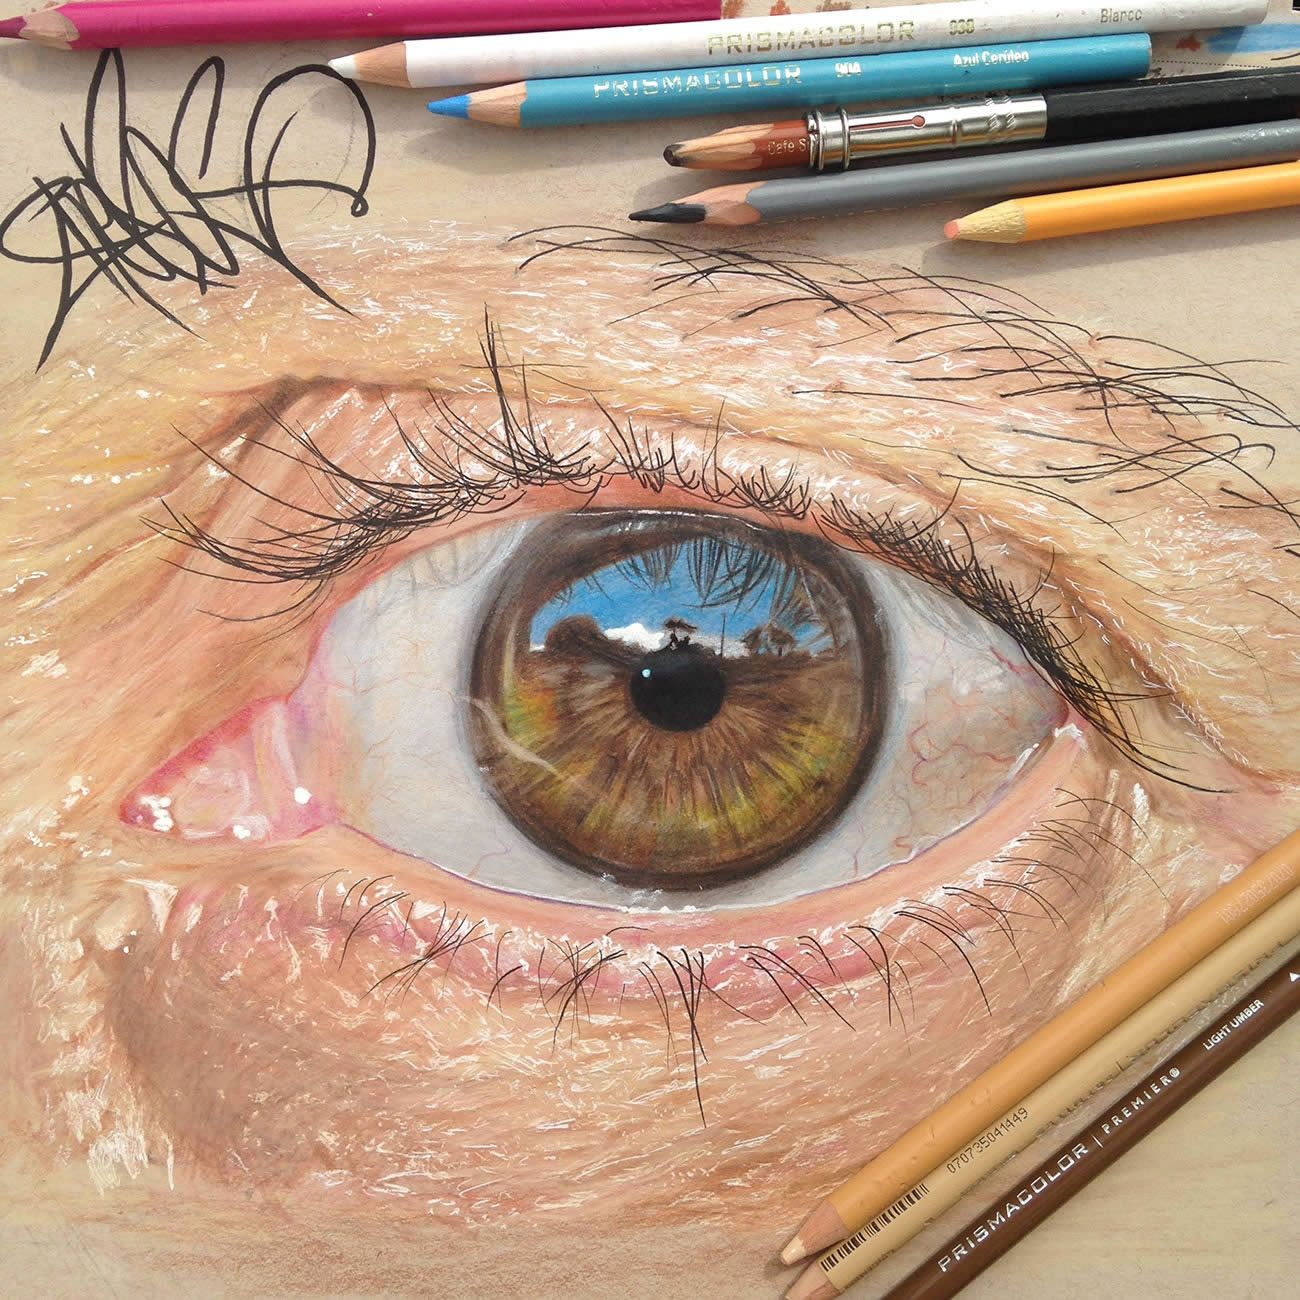 Incredibly Realistic Eye Illustrations Made Using Colored Pencils - Artist uses pencils to create hyperrealistic drawings of paint